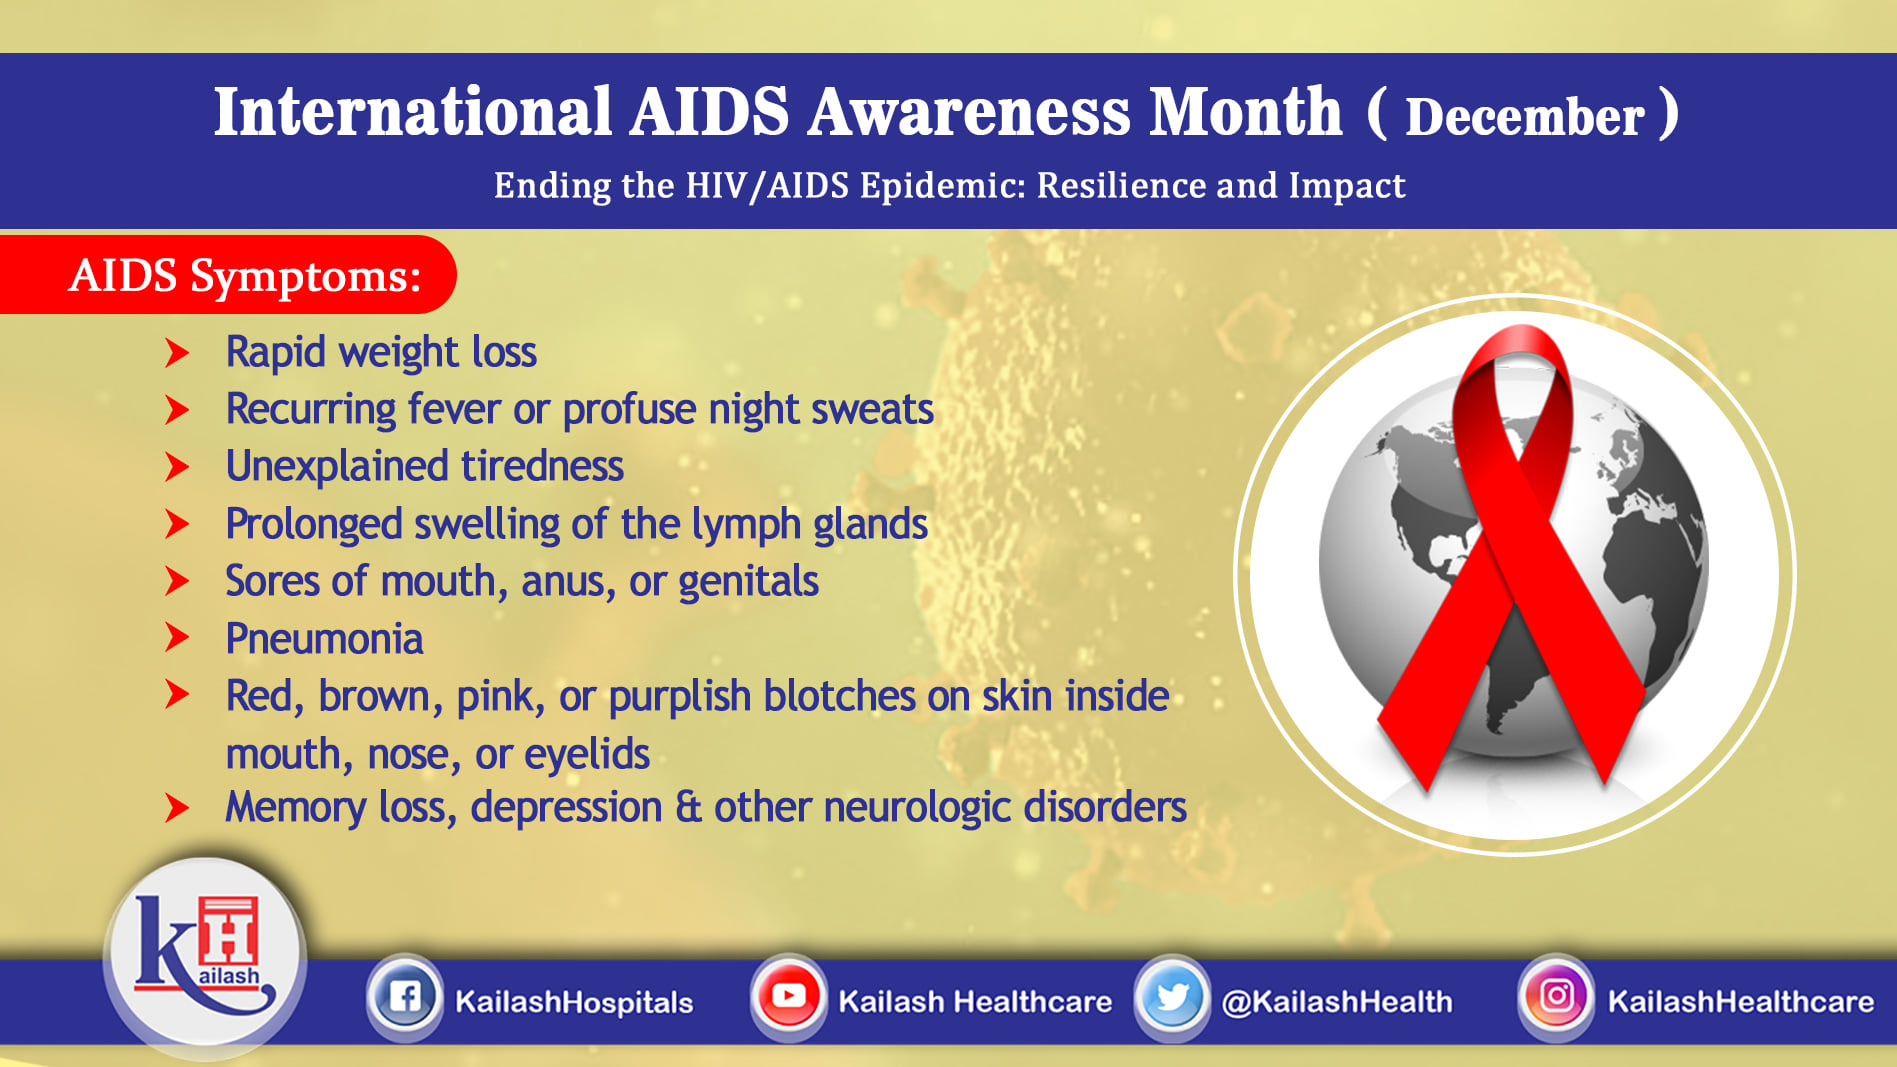 HIV infection is usually asymptomatic until it progresses to AIDS. If you experience these warning signs it may indicate HIV infection.